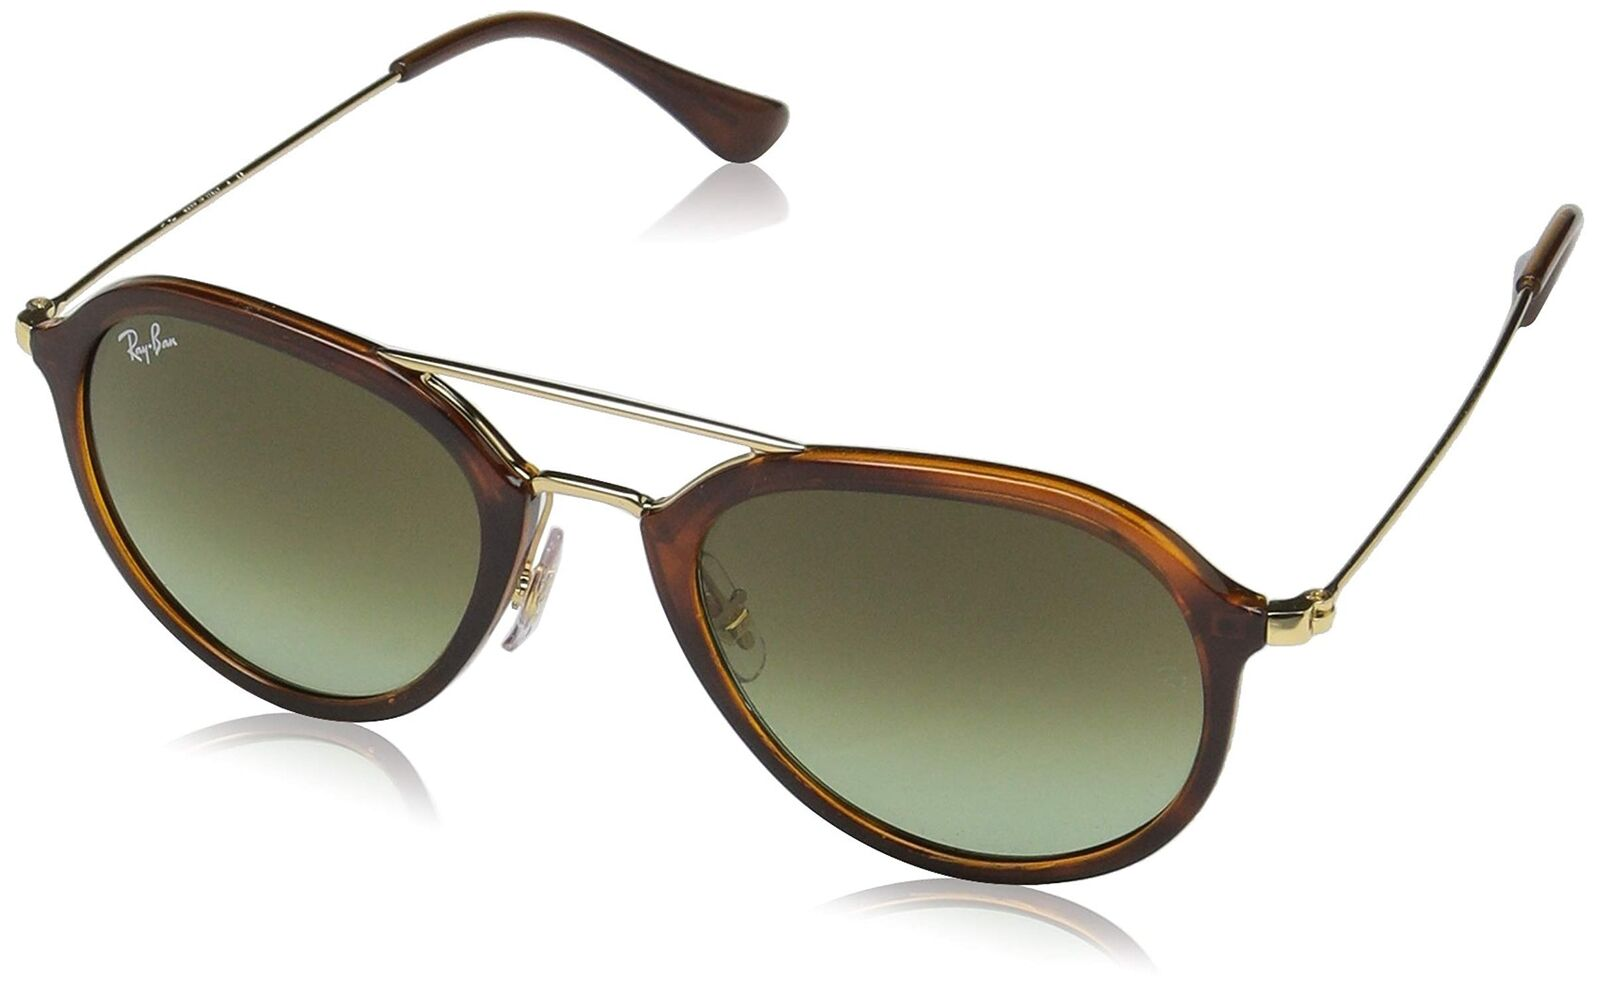 19636f3cae Ray Ban RB4253 820 A6 53MM Gradient Sunglasses Gold Tone Green Tortoise